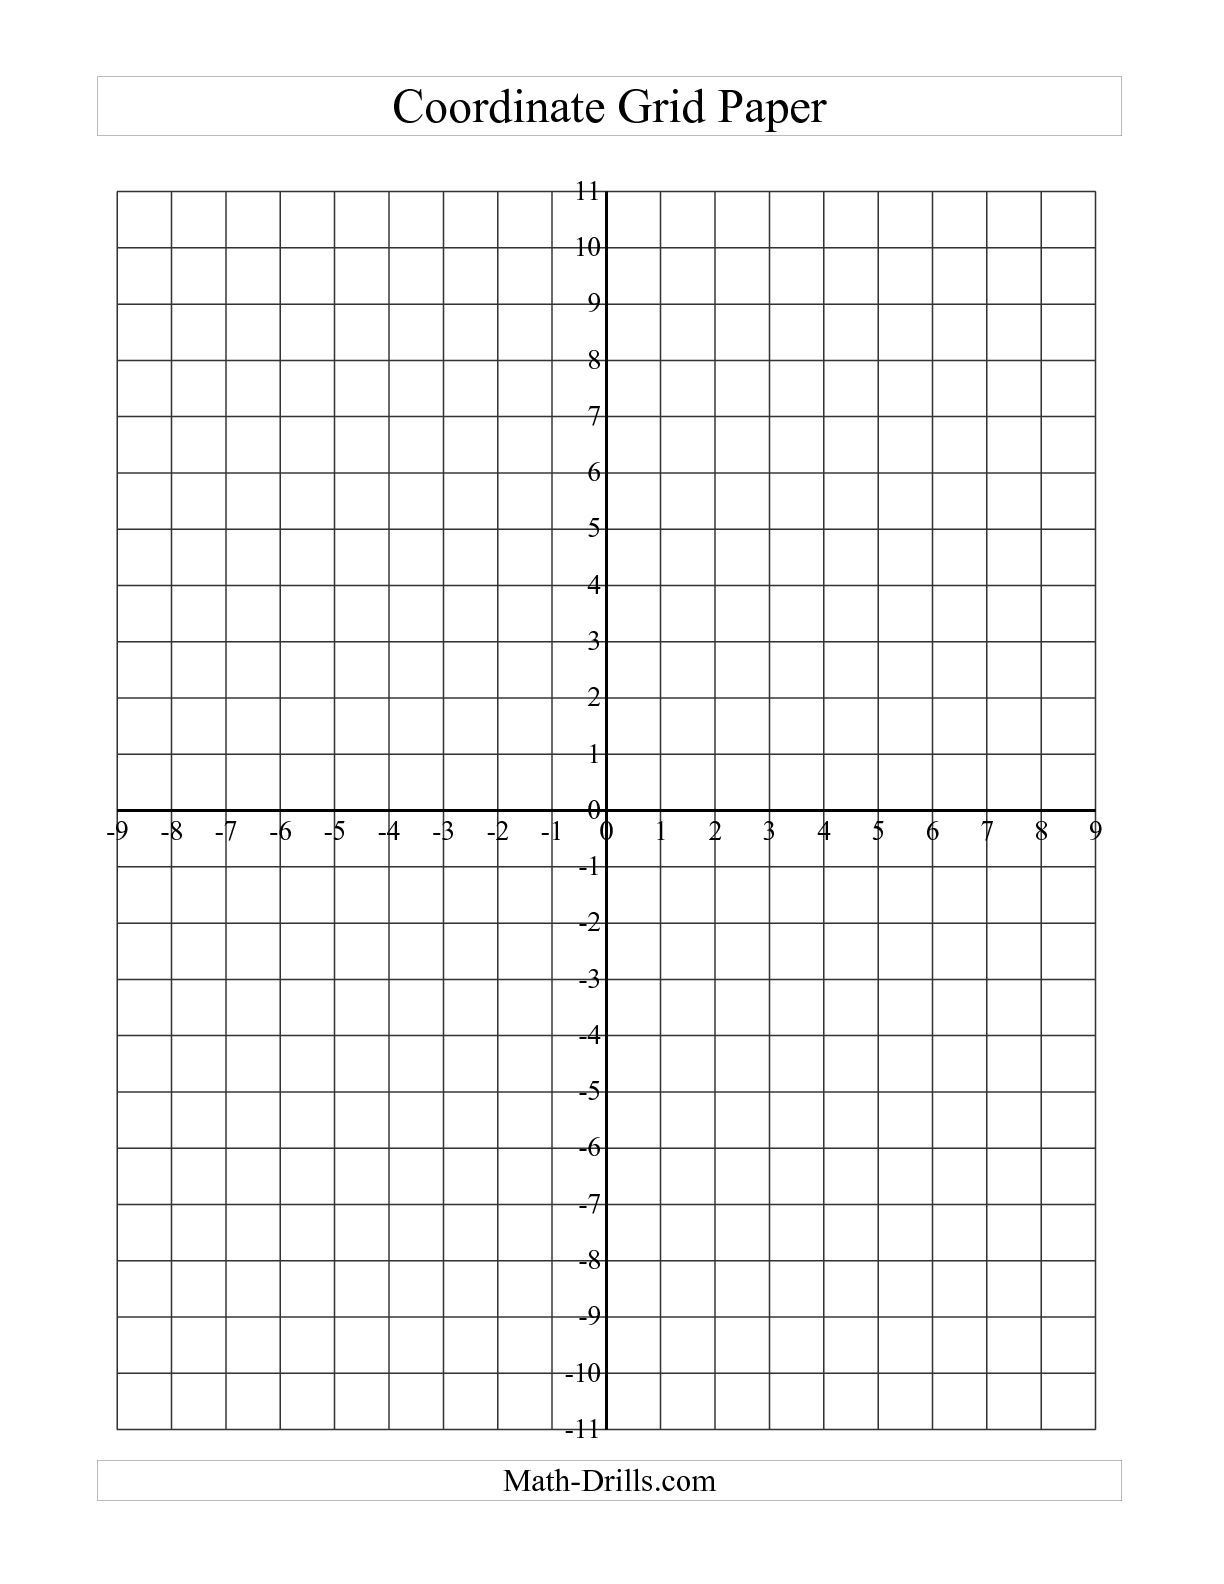 Coordinate Plane Worksheets 5th Grade Coordinate Grid Worksheets with Answers